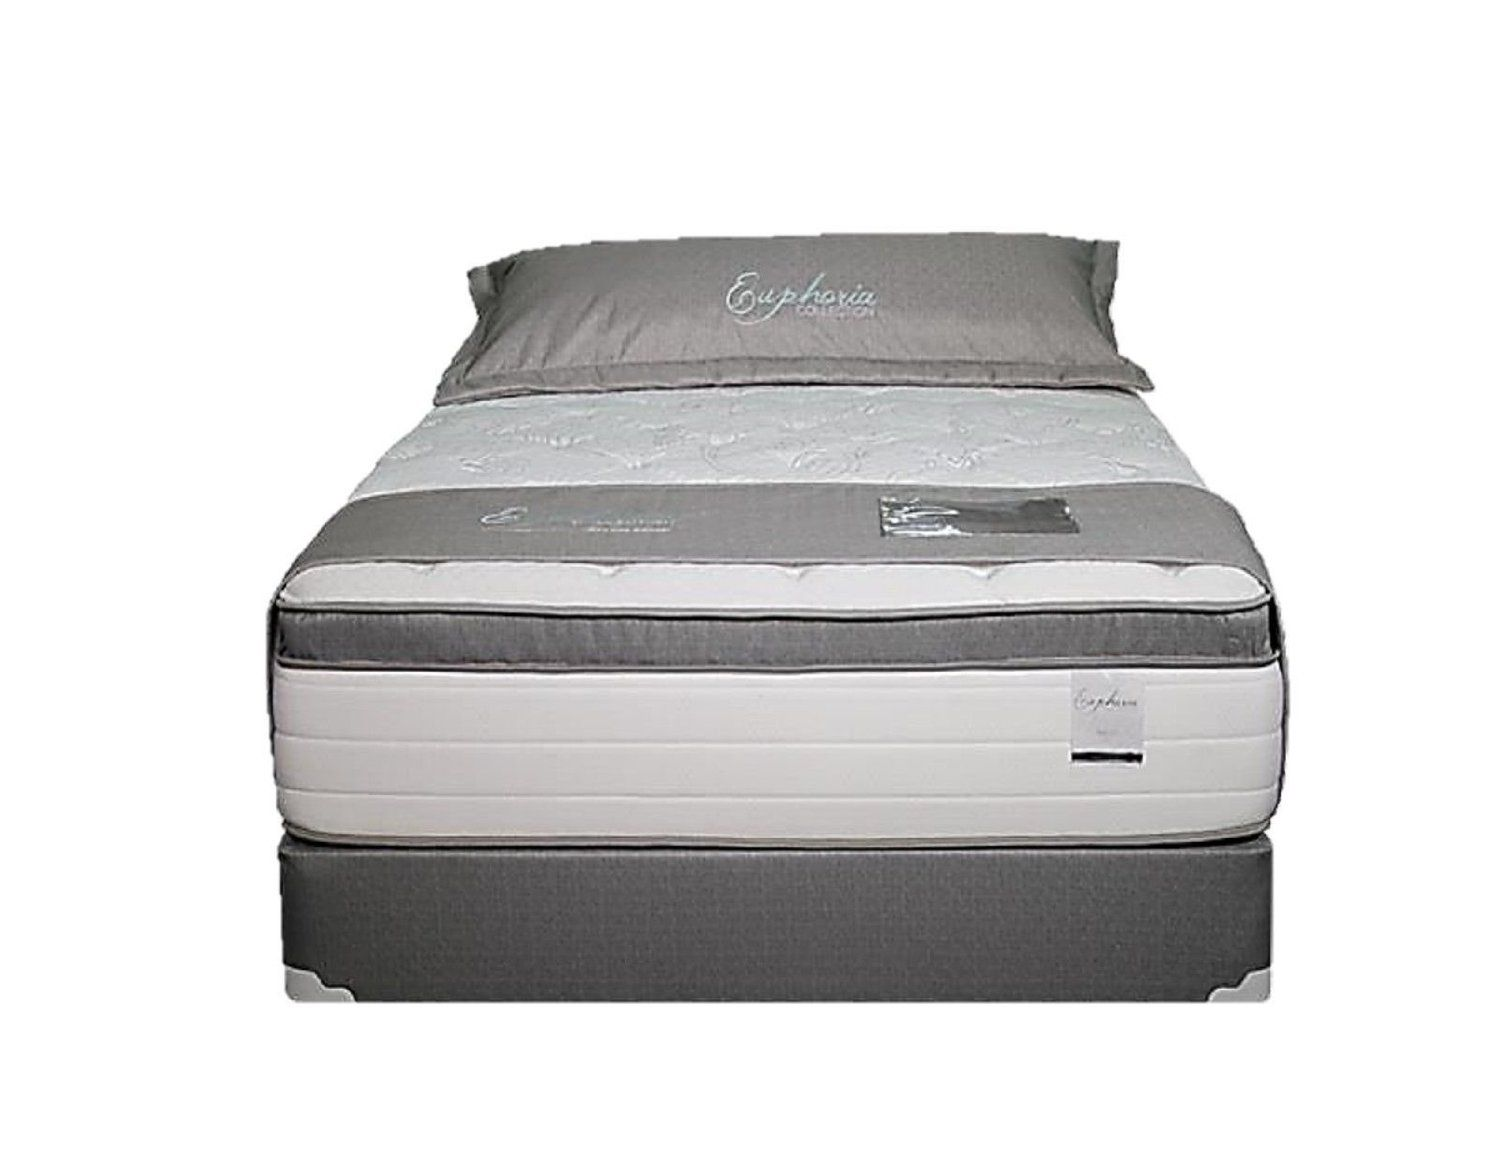 Corsicana 8815 Euphoria Series Ii Pillow Top Hybrid Gel